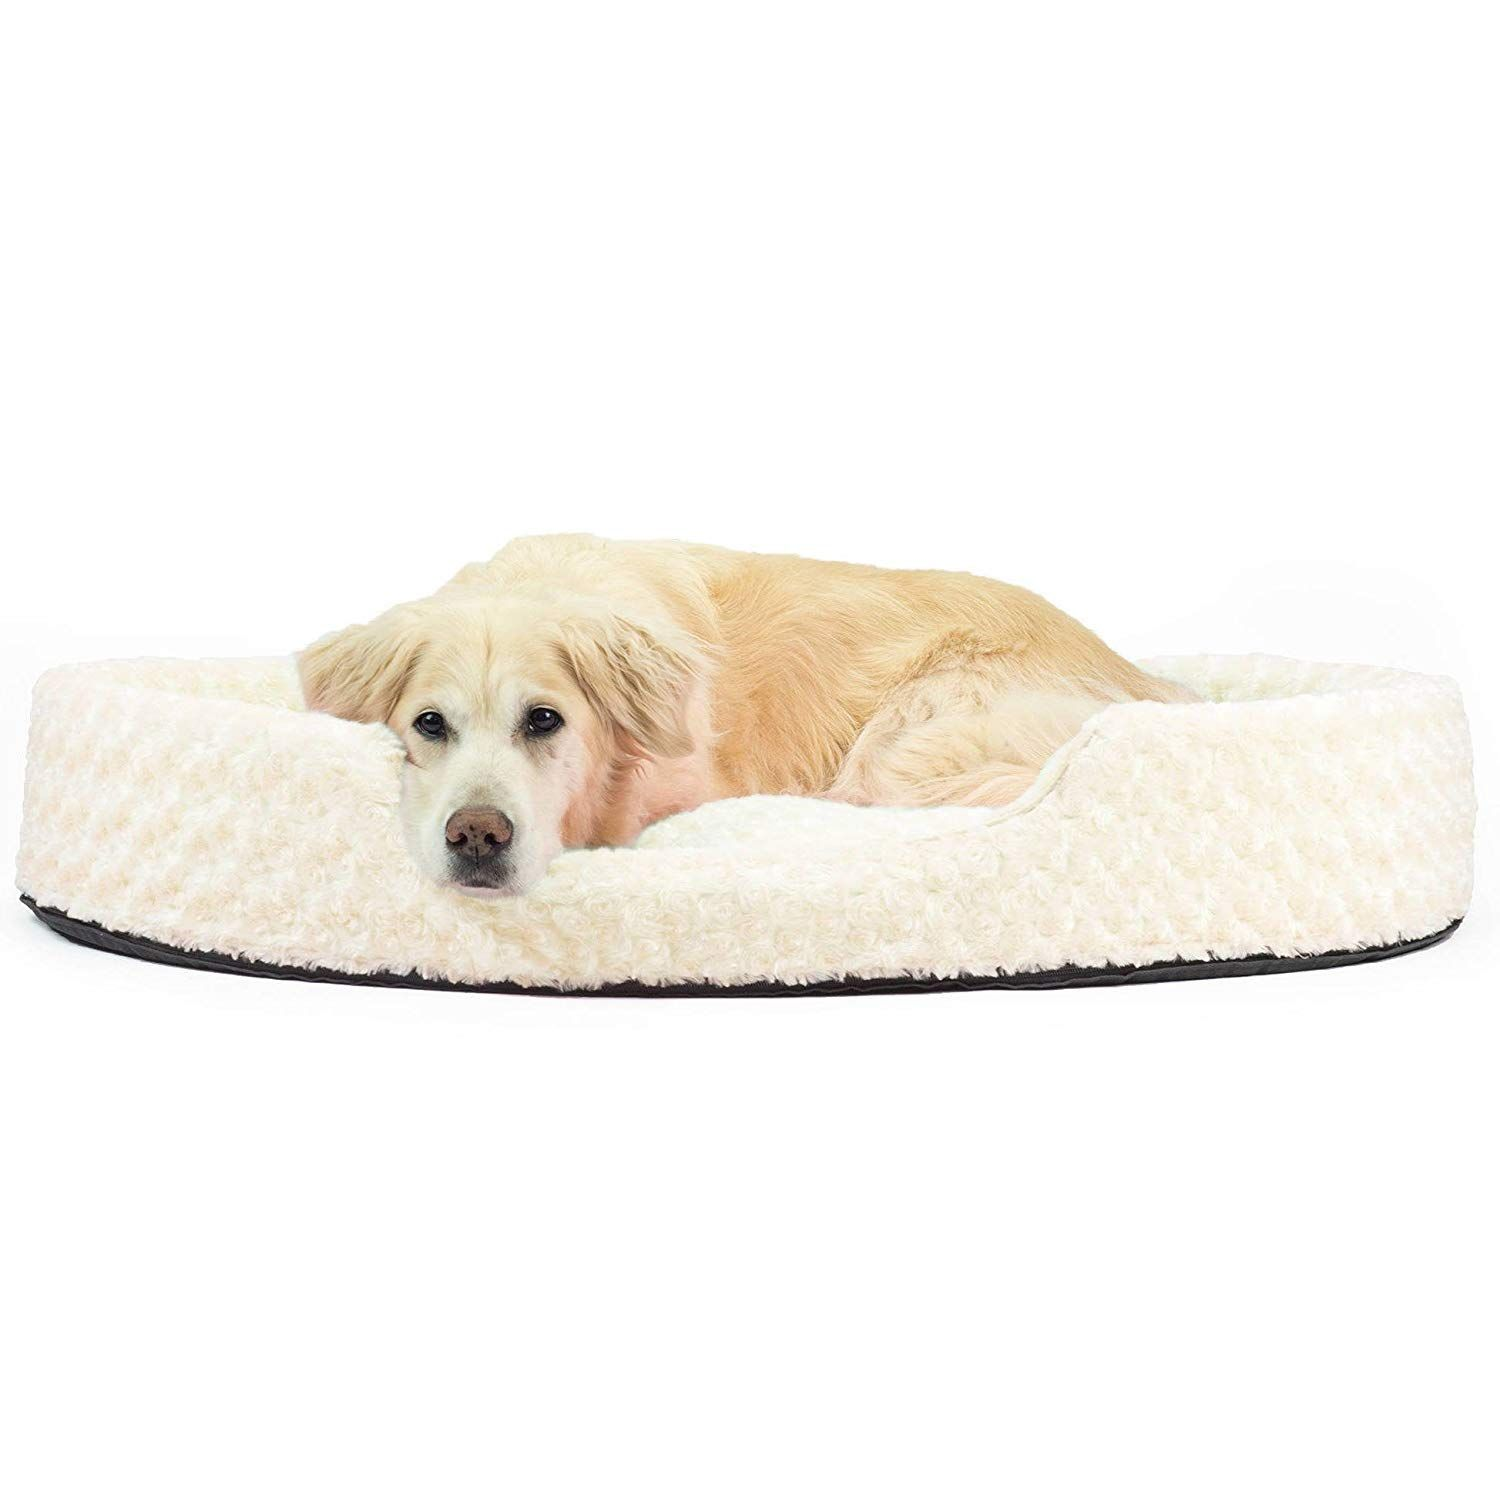 1 Piece Cream Tufted Jumbo 42 Inches Ultra Plush Oval Comfort Pet Bed Off White Color Traditional Style Ne Dog Bed Furniture Nest Dog Bed Comfortable Dog Beds